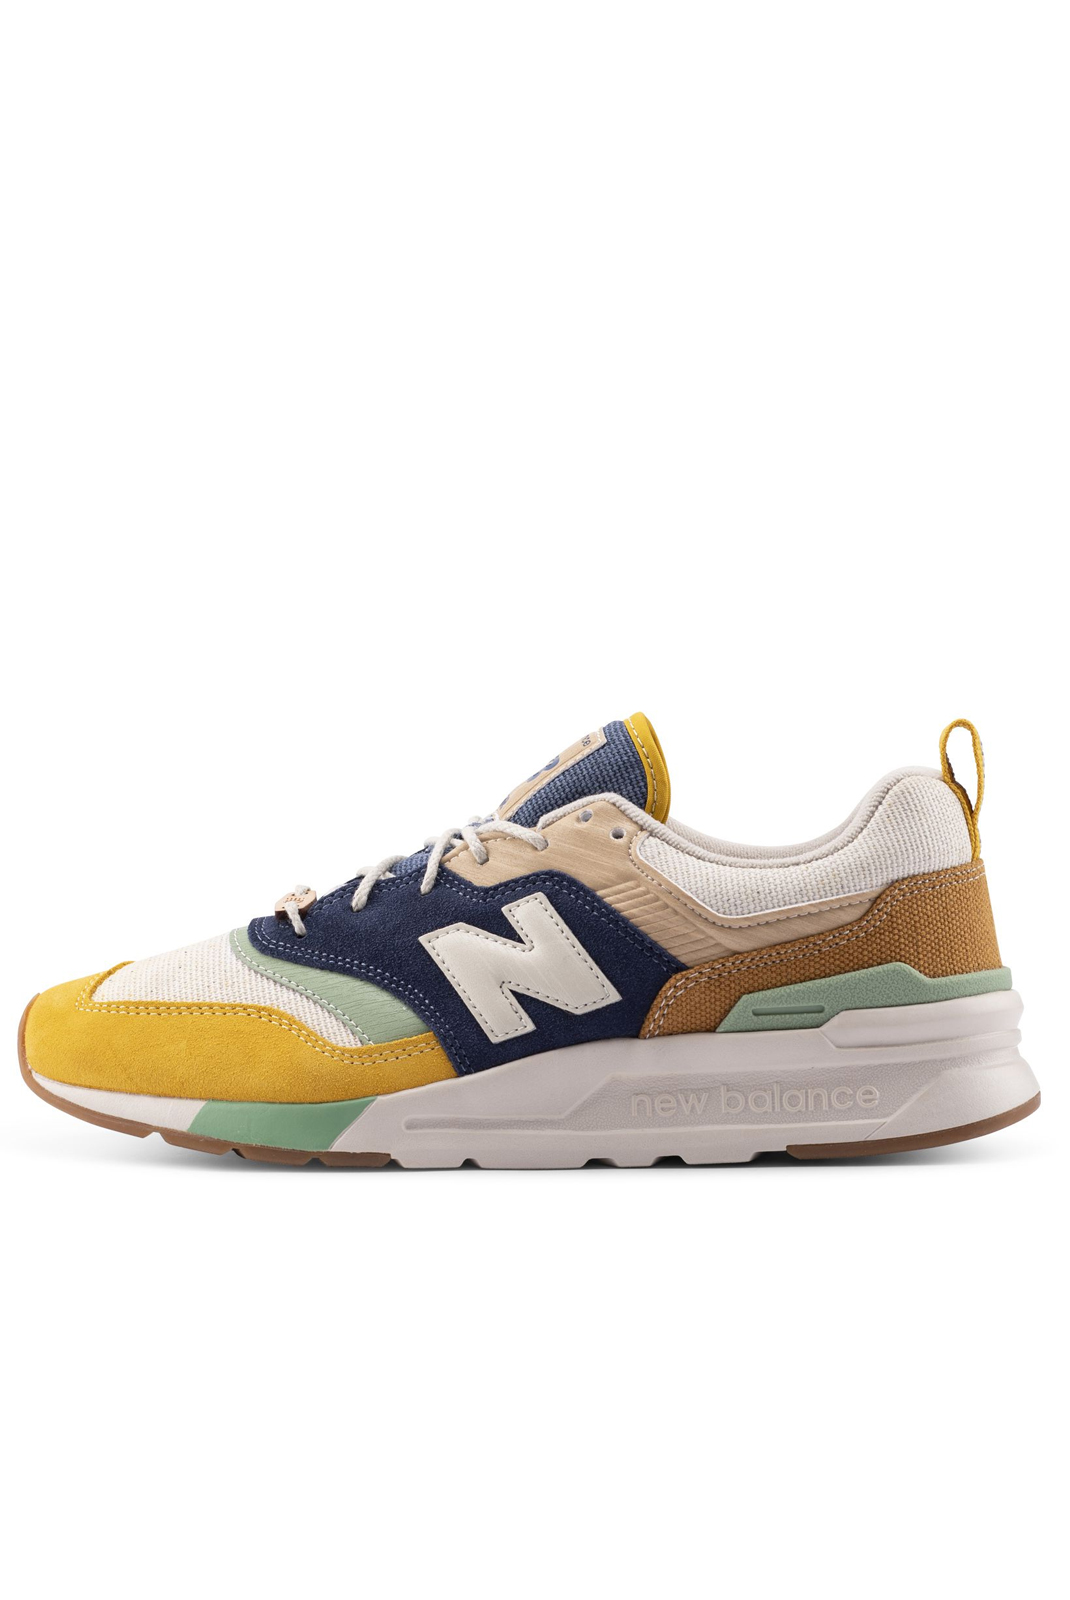 Baskets / Sport  New balance CM997HAO hao